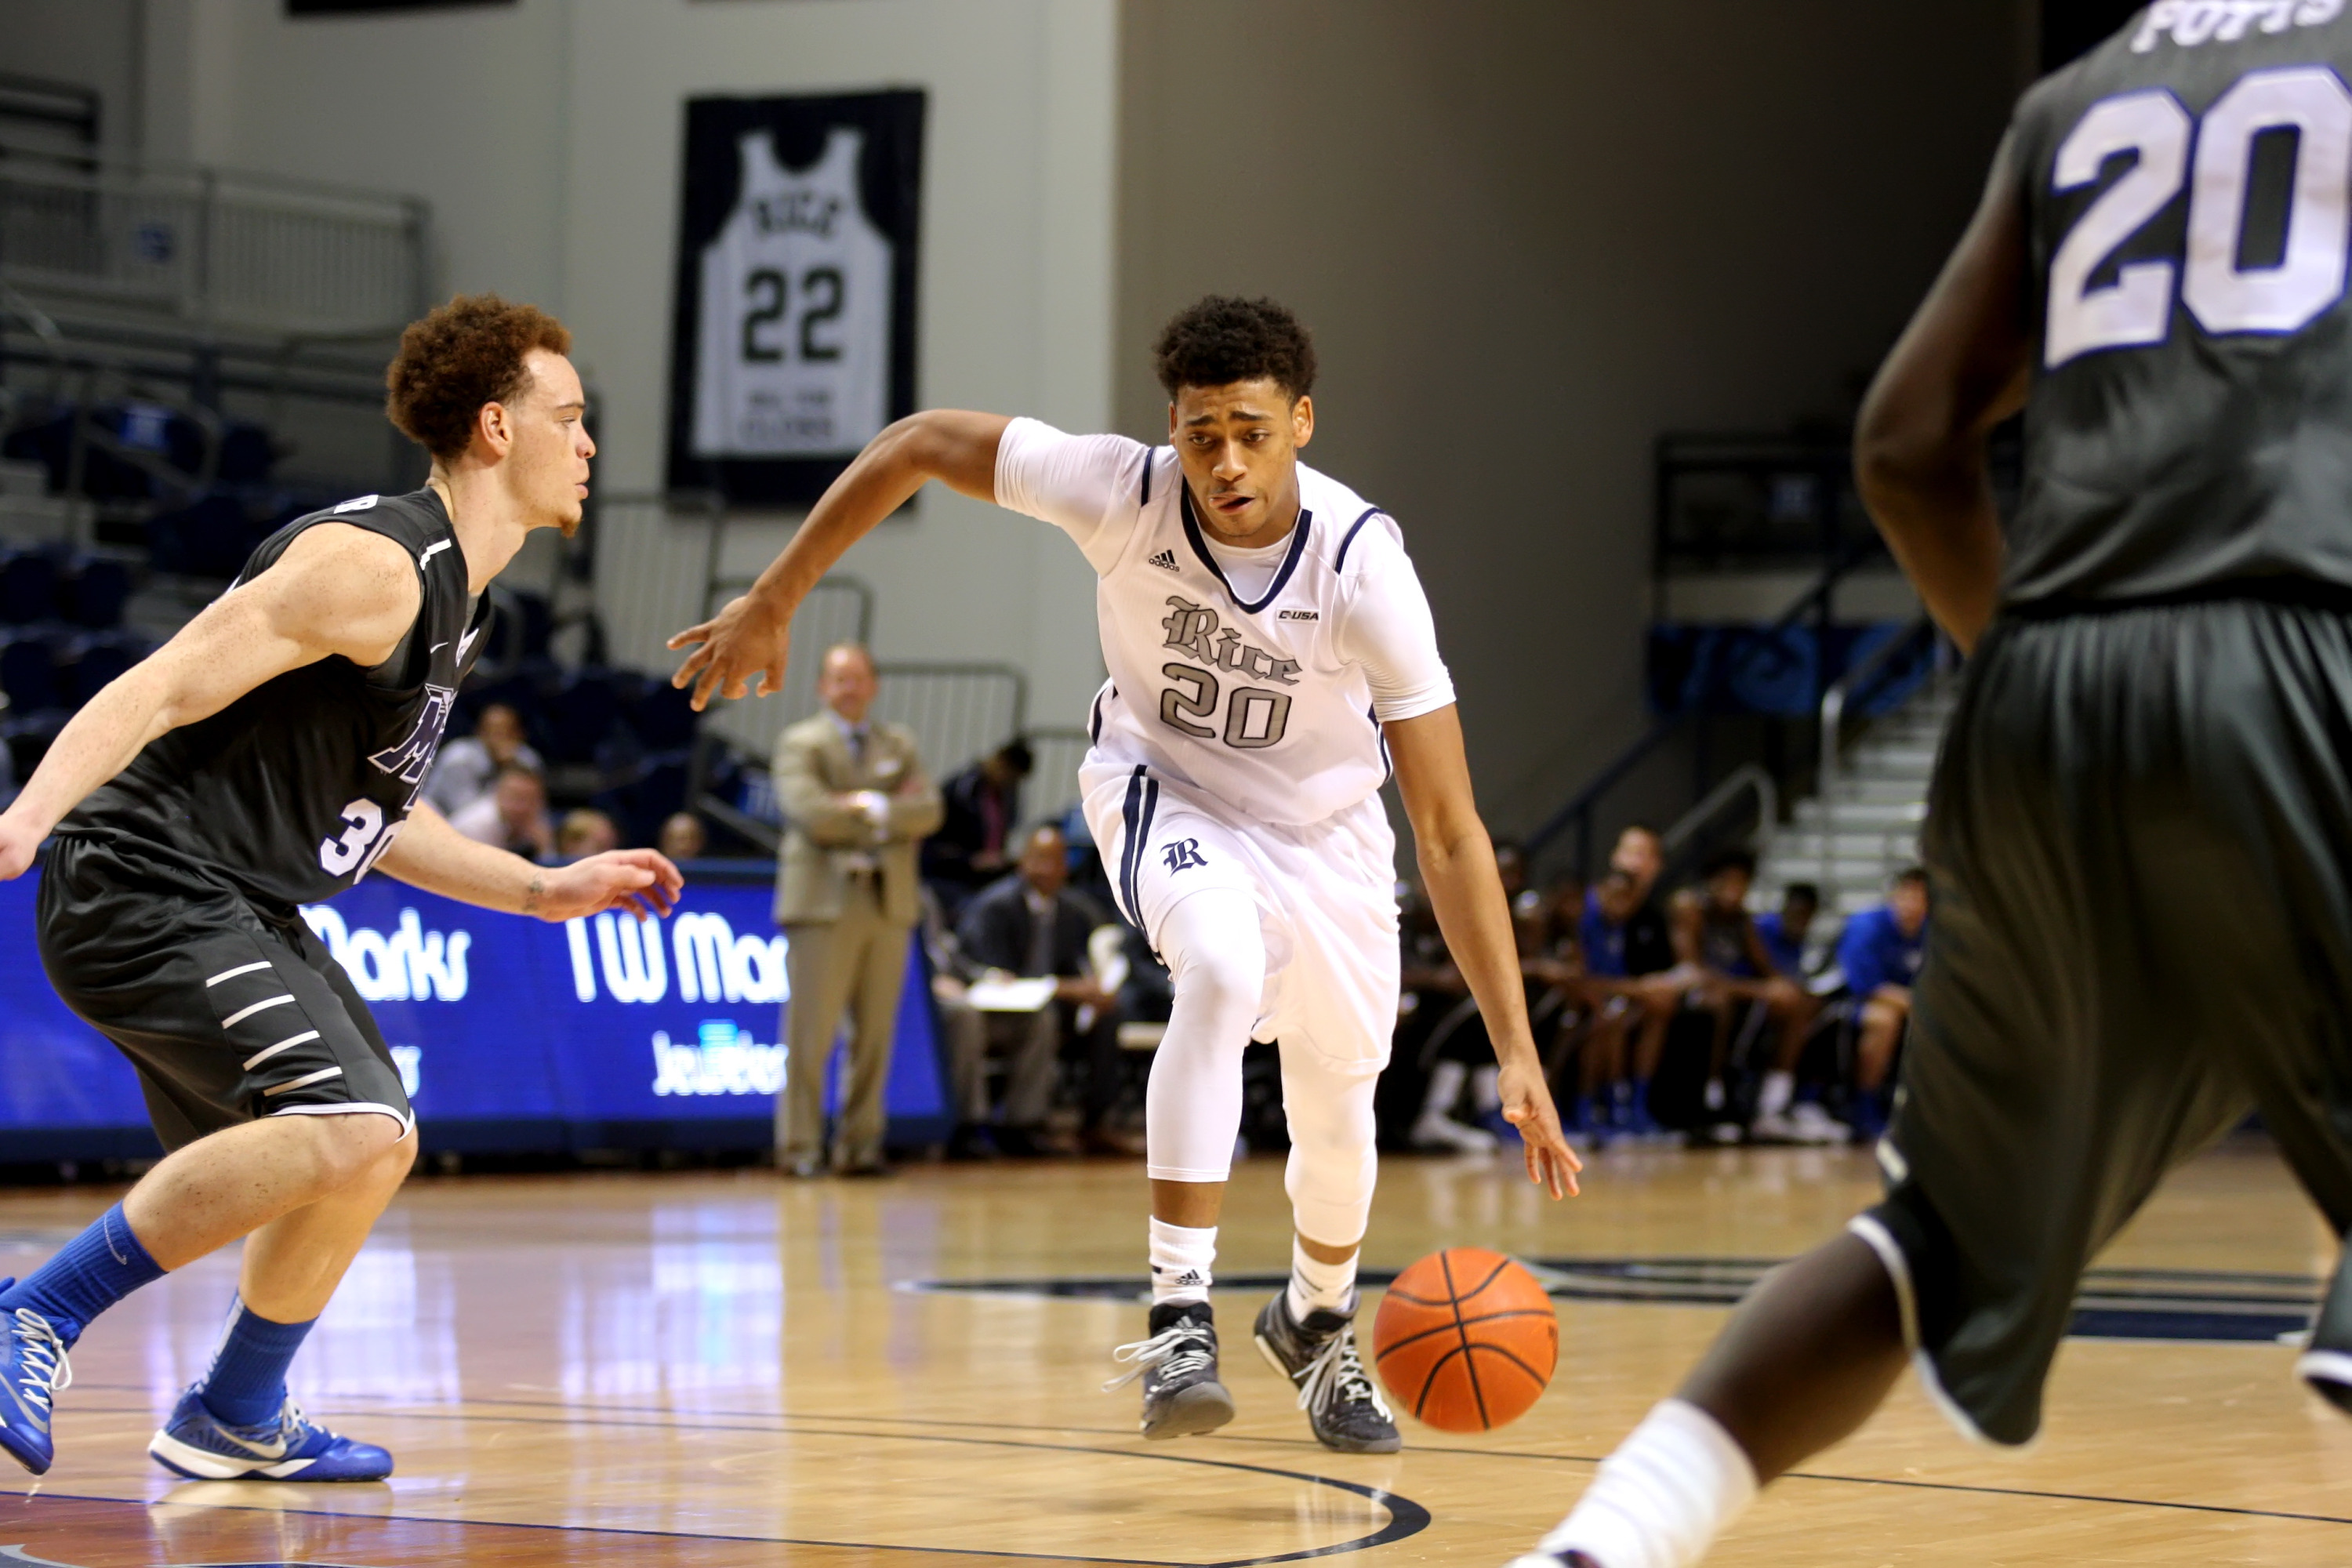 <b>Jeremy Jones</b> tallied a season high eight points and hauled in six rebounds at UTEP.